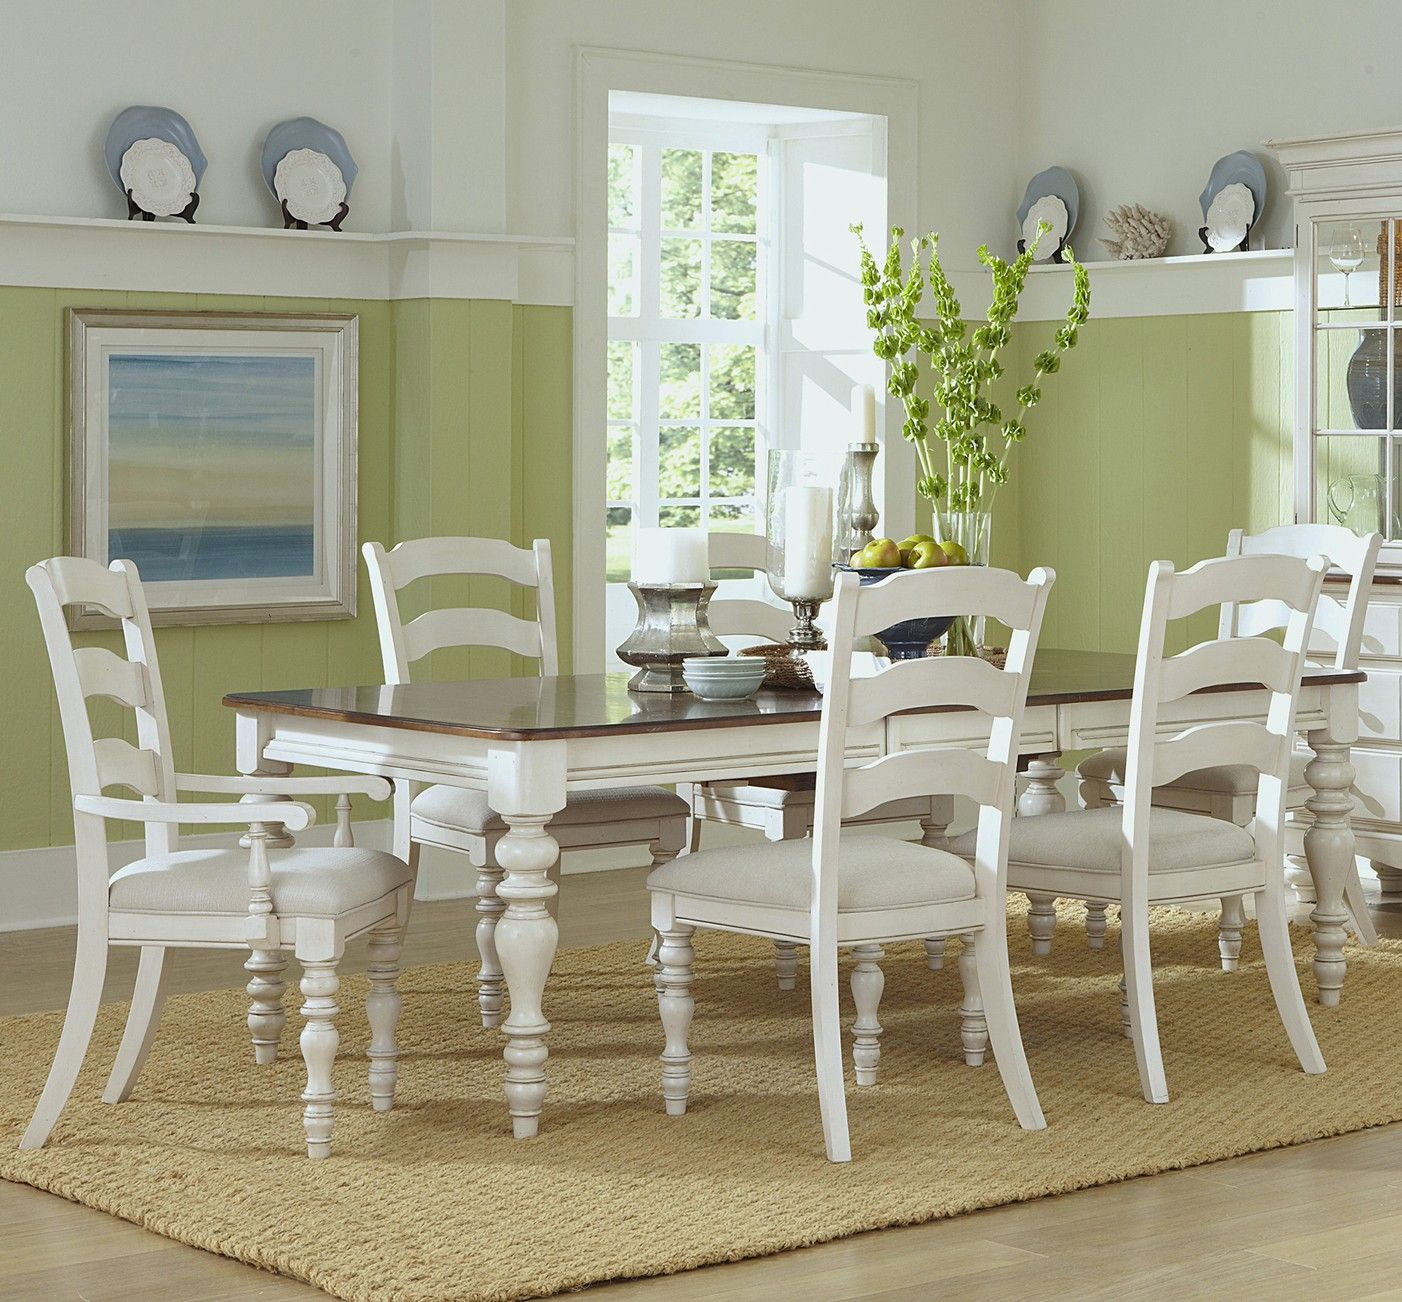 Pine Island Dining Table With Ladder Back Chairs In Old White By Hillsdale Furniture